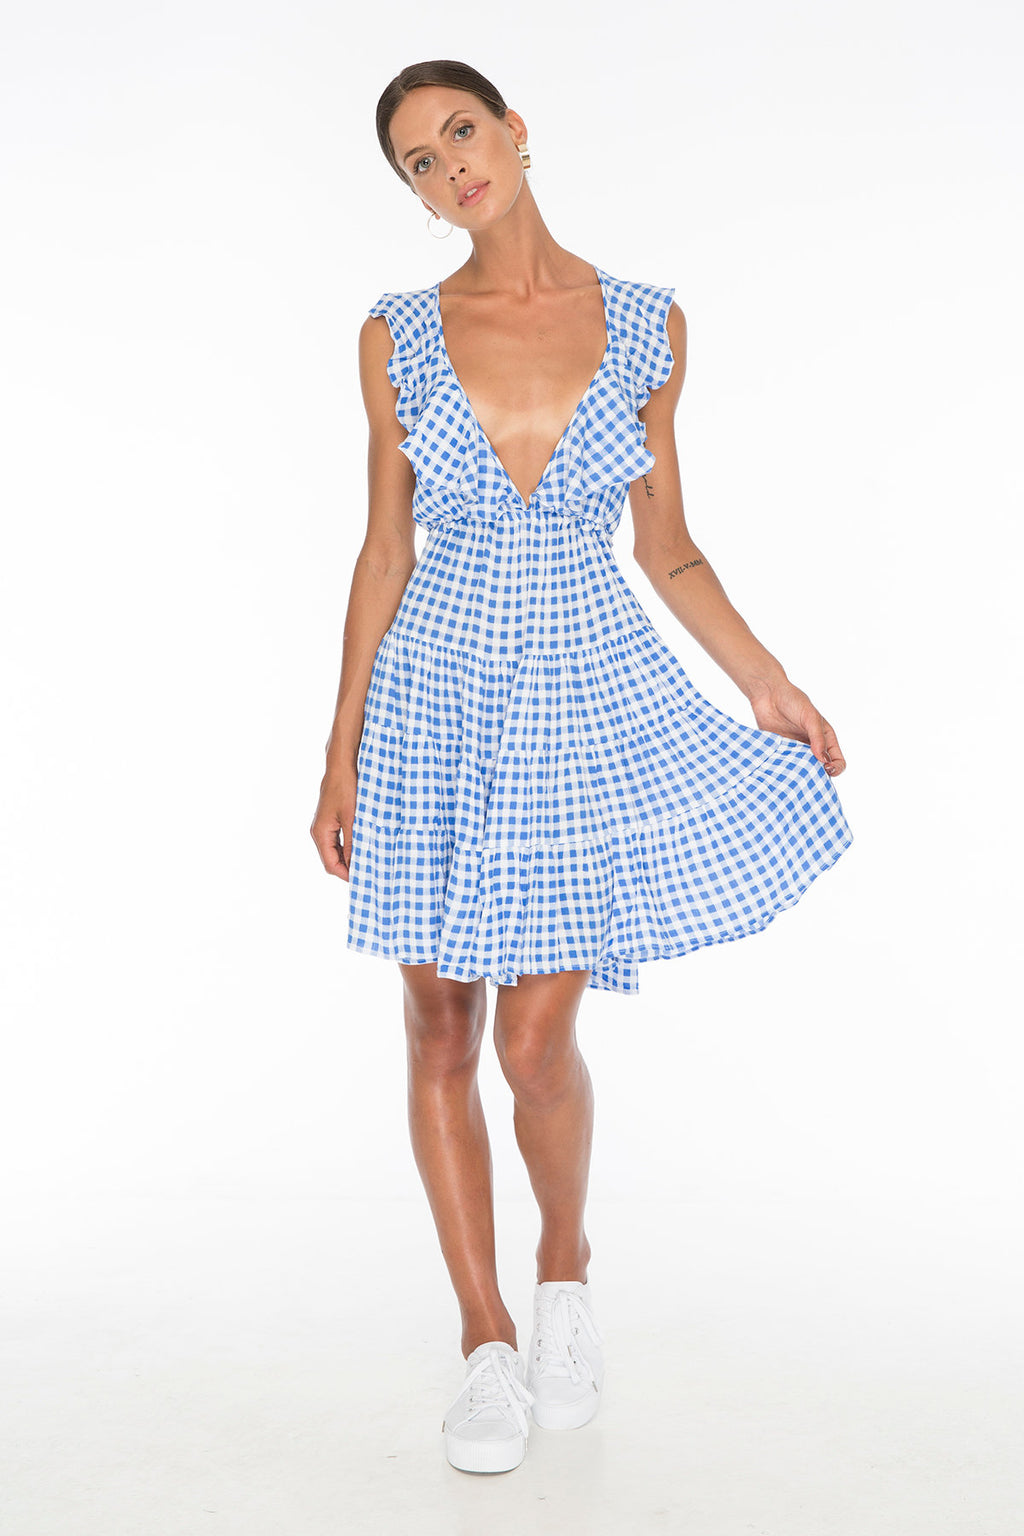 TSO-Susannah Coe Gingham Blue Dress - Zuttion